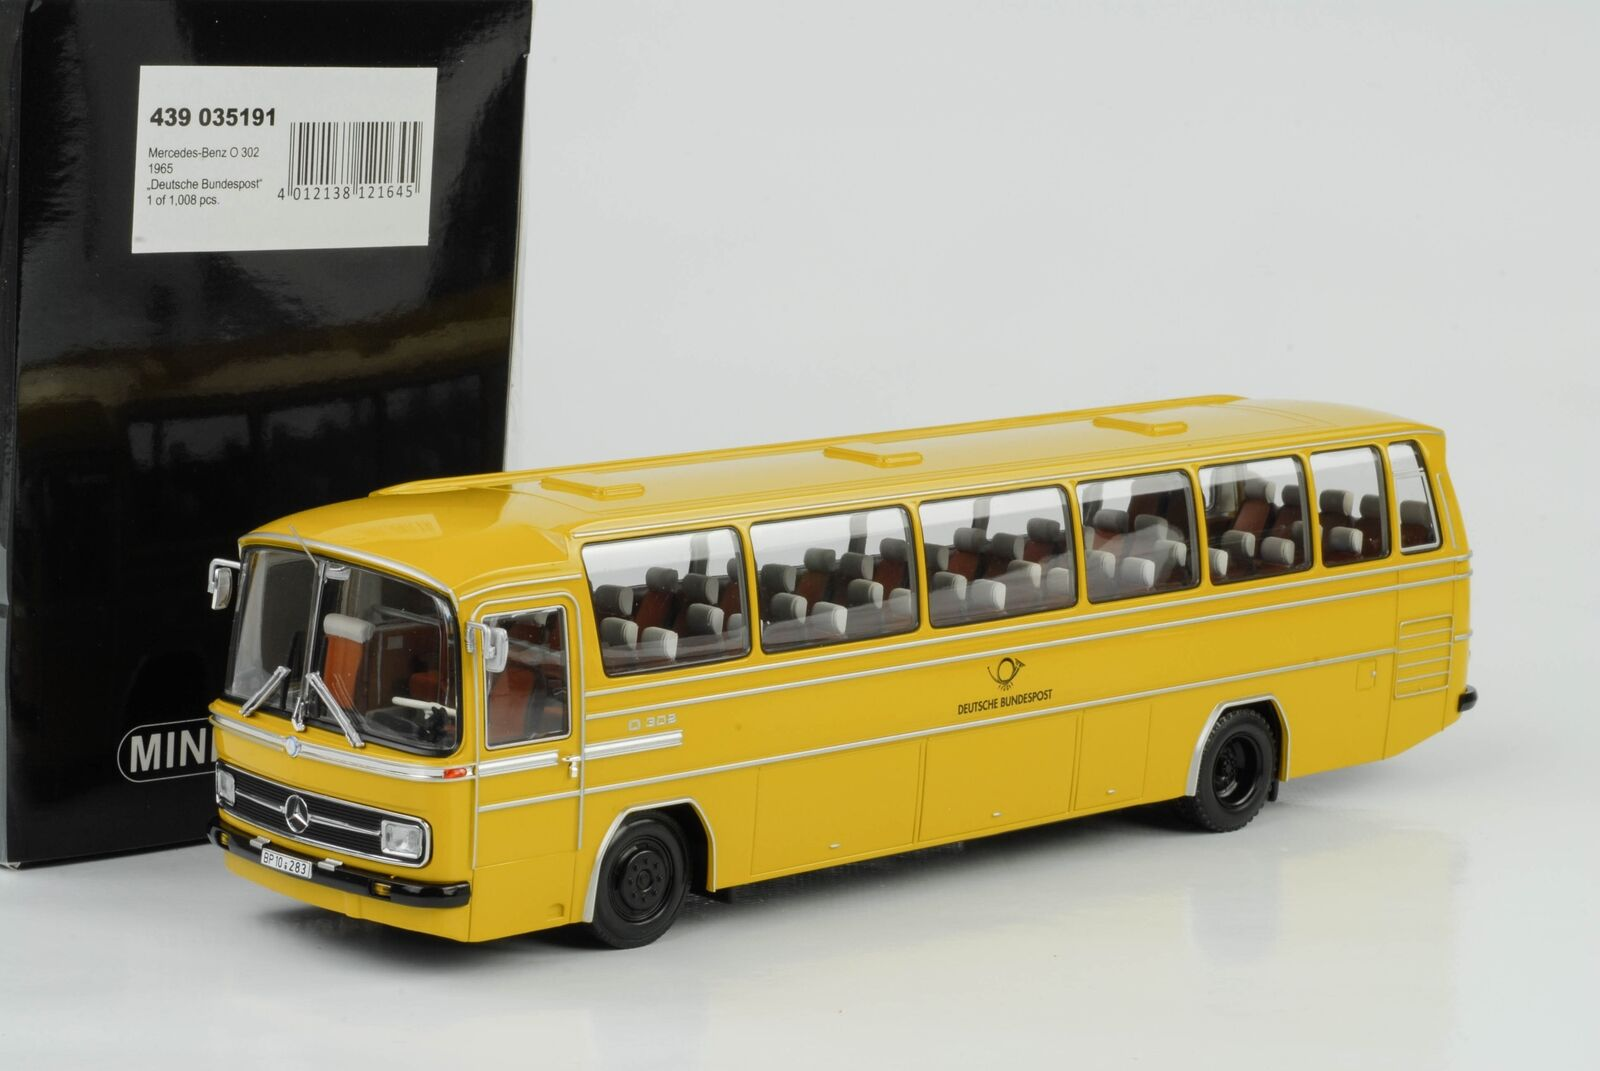 1965 MERCEDES-BENZ O 302 BUS Deutsche Bundespost 1 43 Minichamps